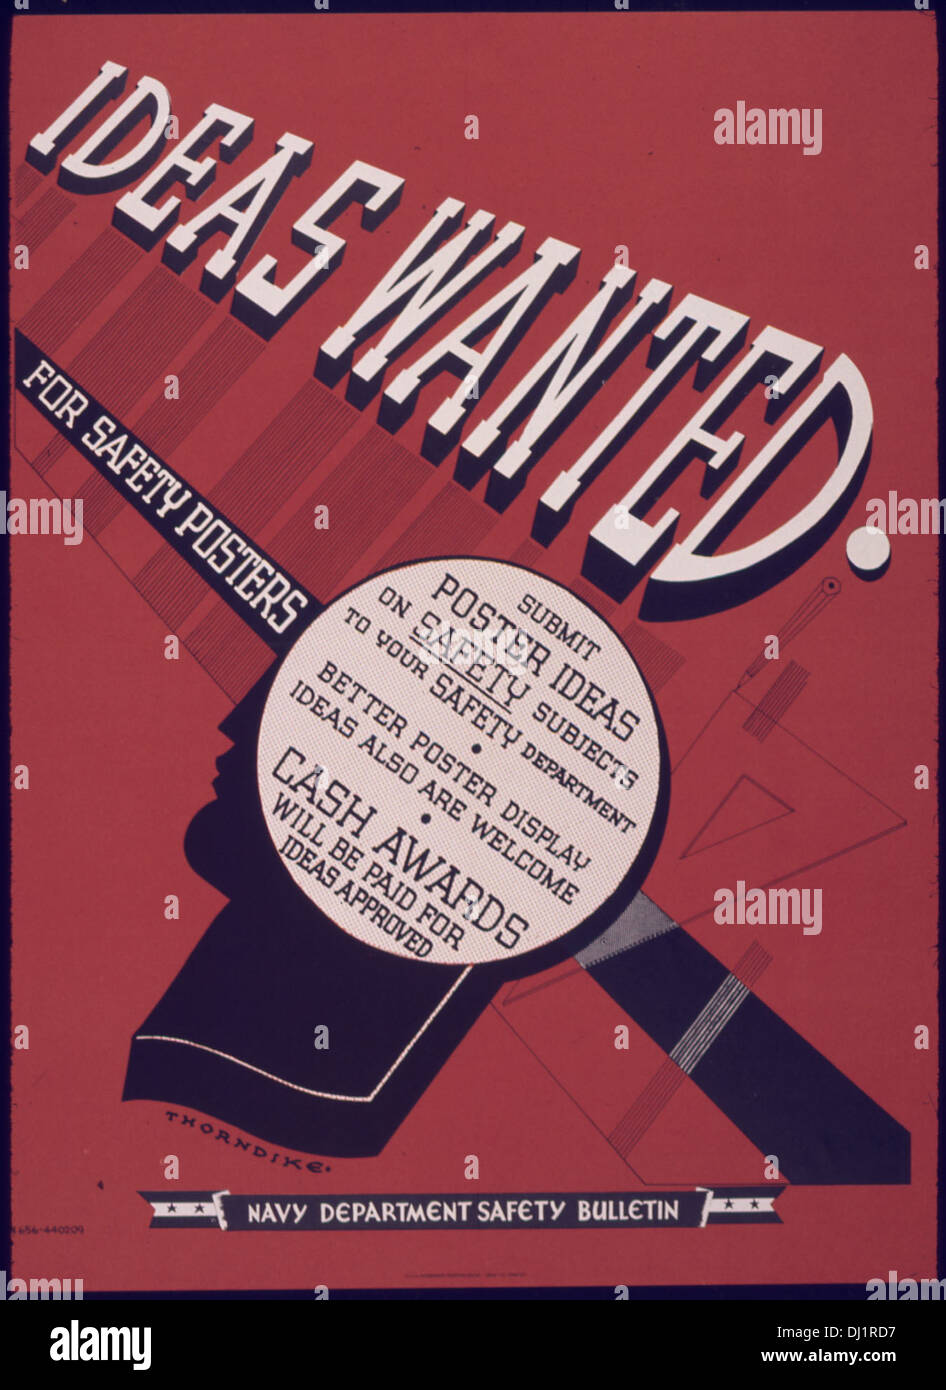 ideas wanted for safety posters 573 stock photo: 62735267 - alamy